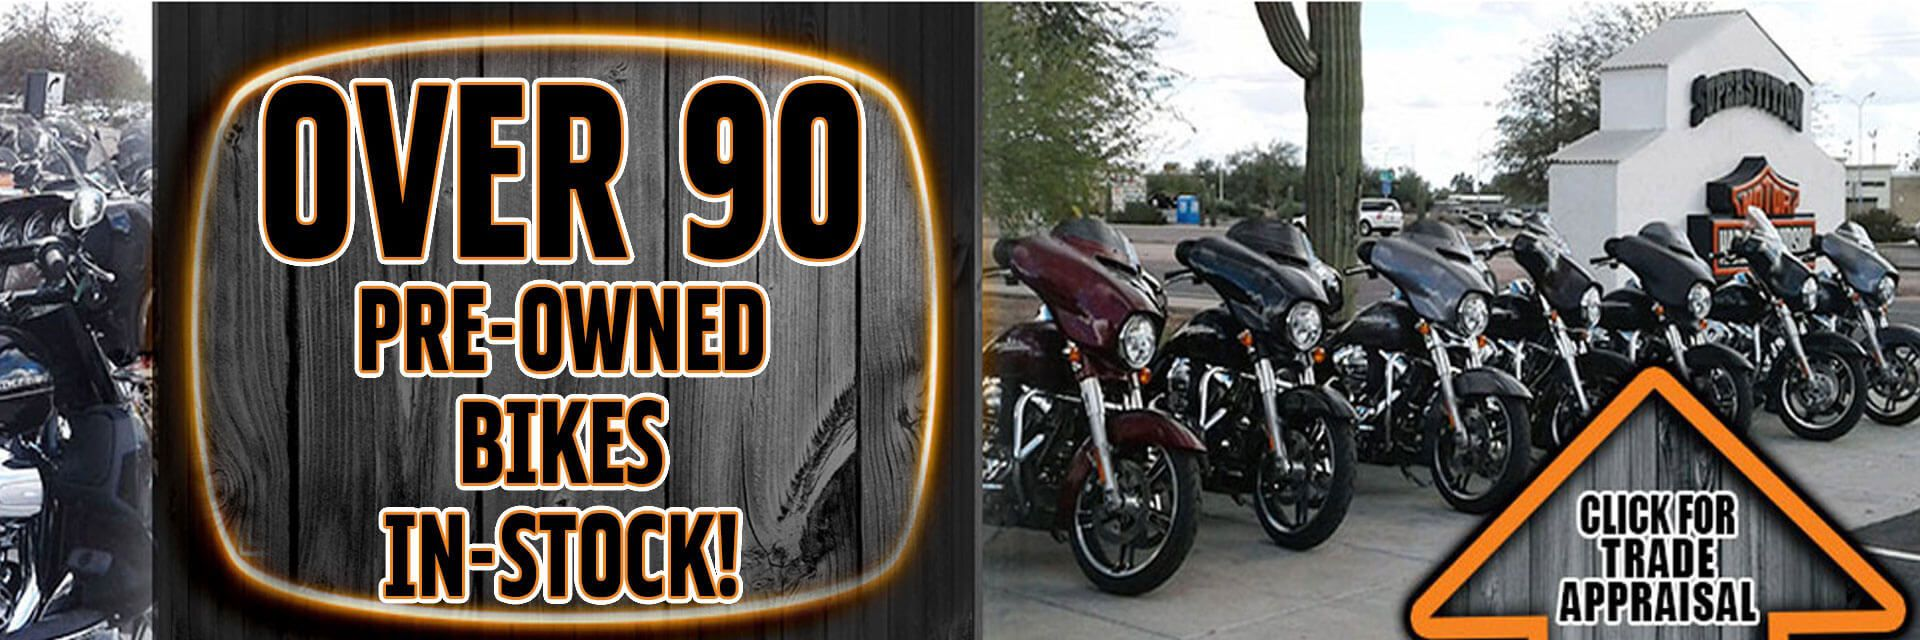 Get Your FREE Trade Appraisal Today @ Superstition Harley-Davidson® in Apache Junction 85120